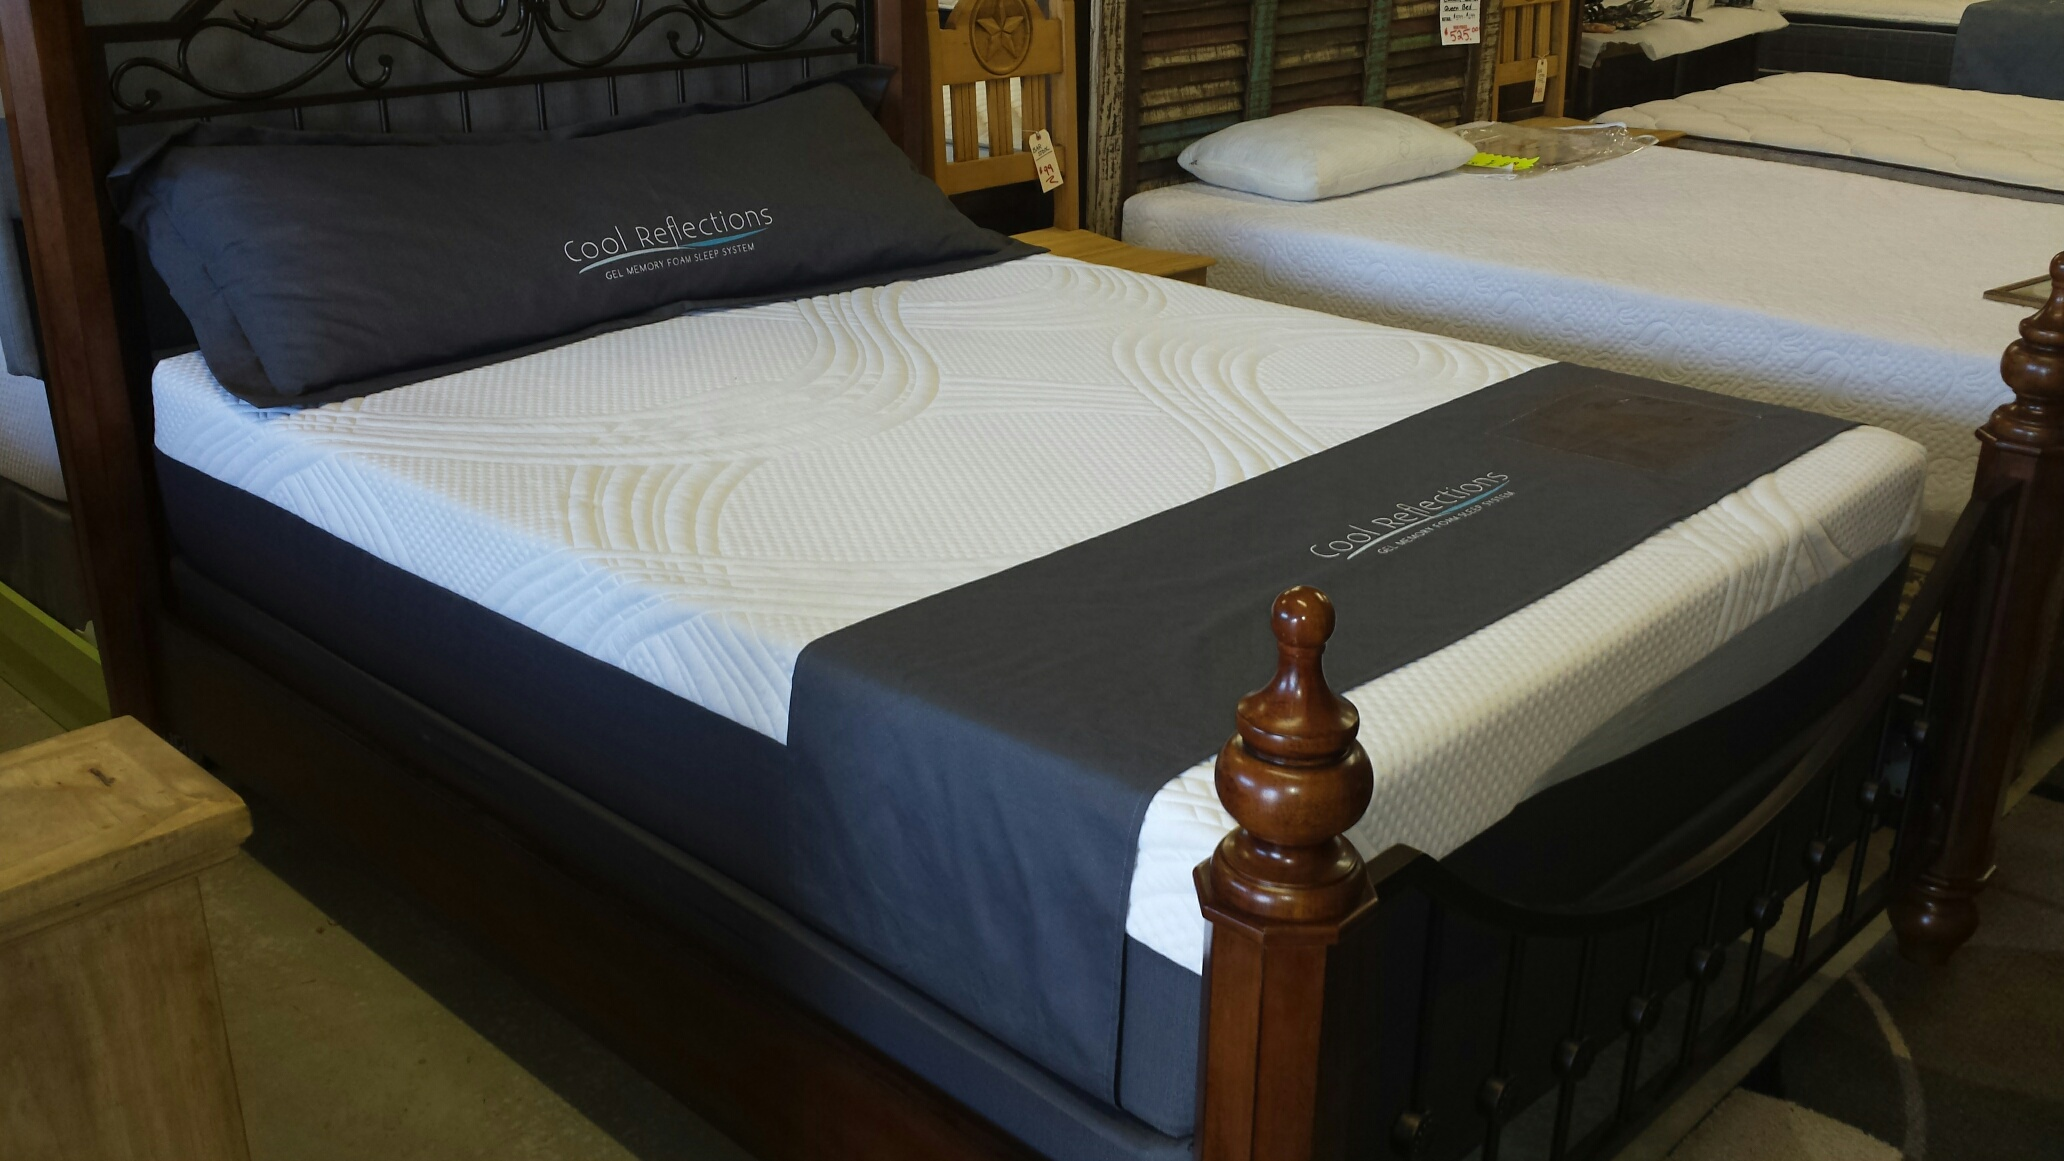 Bed frames for a gel mattress, as well as other types of